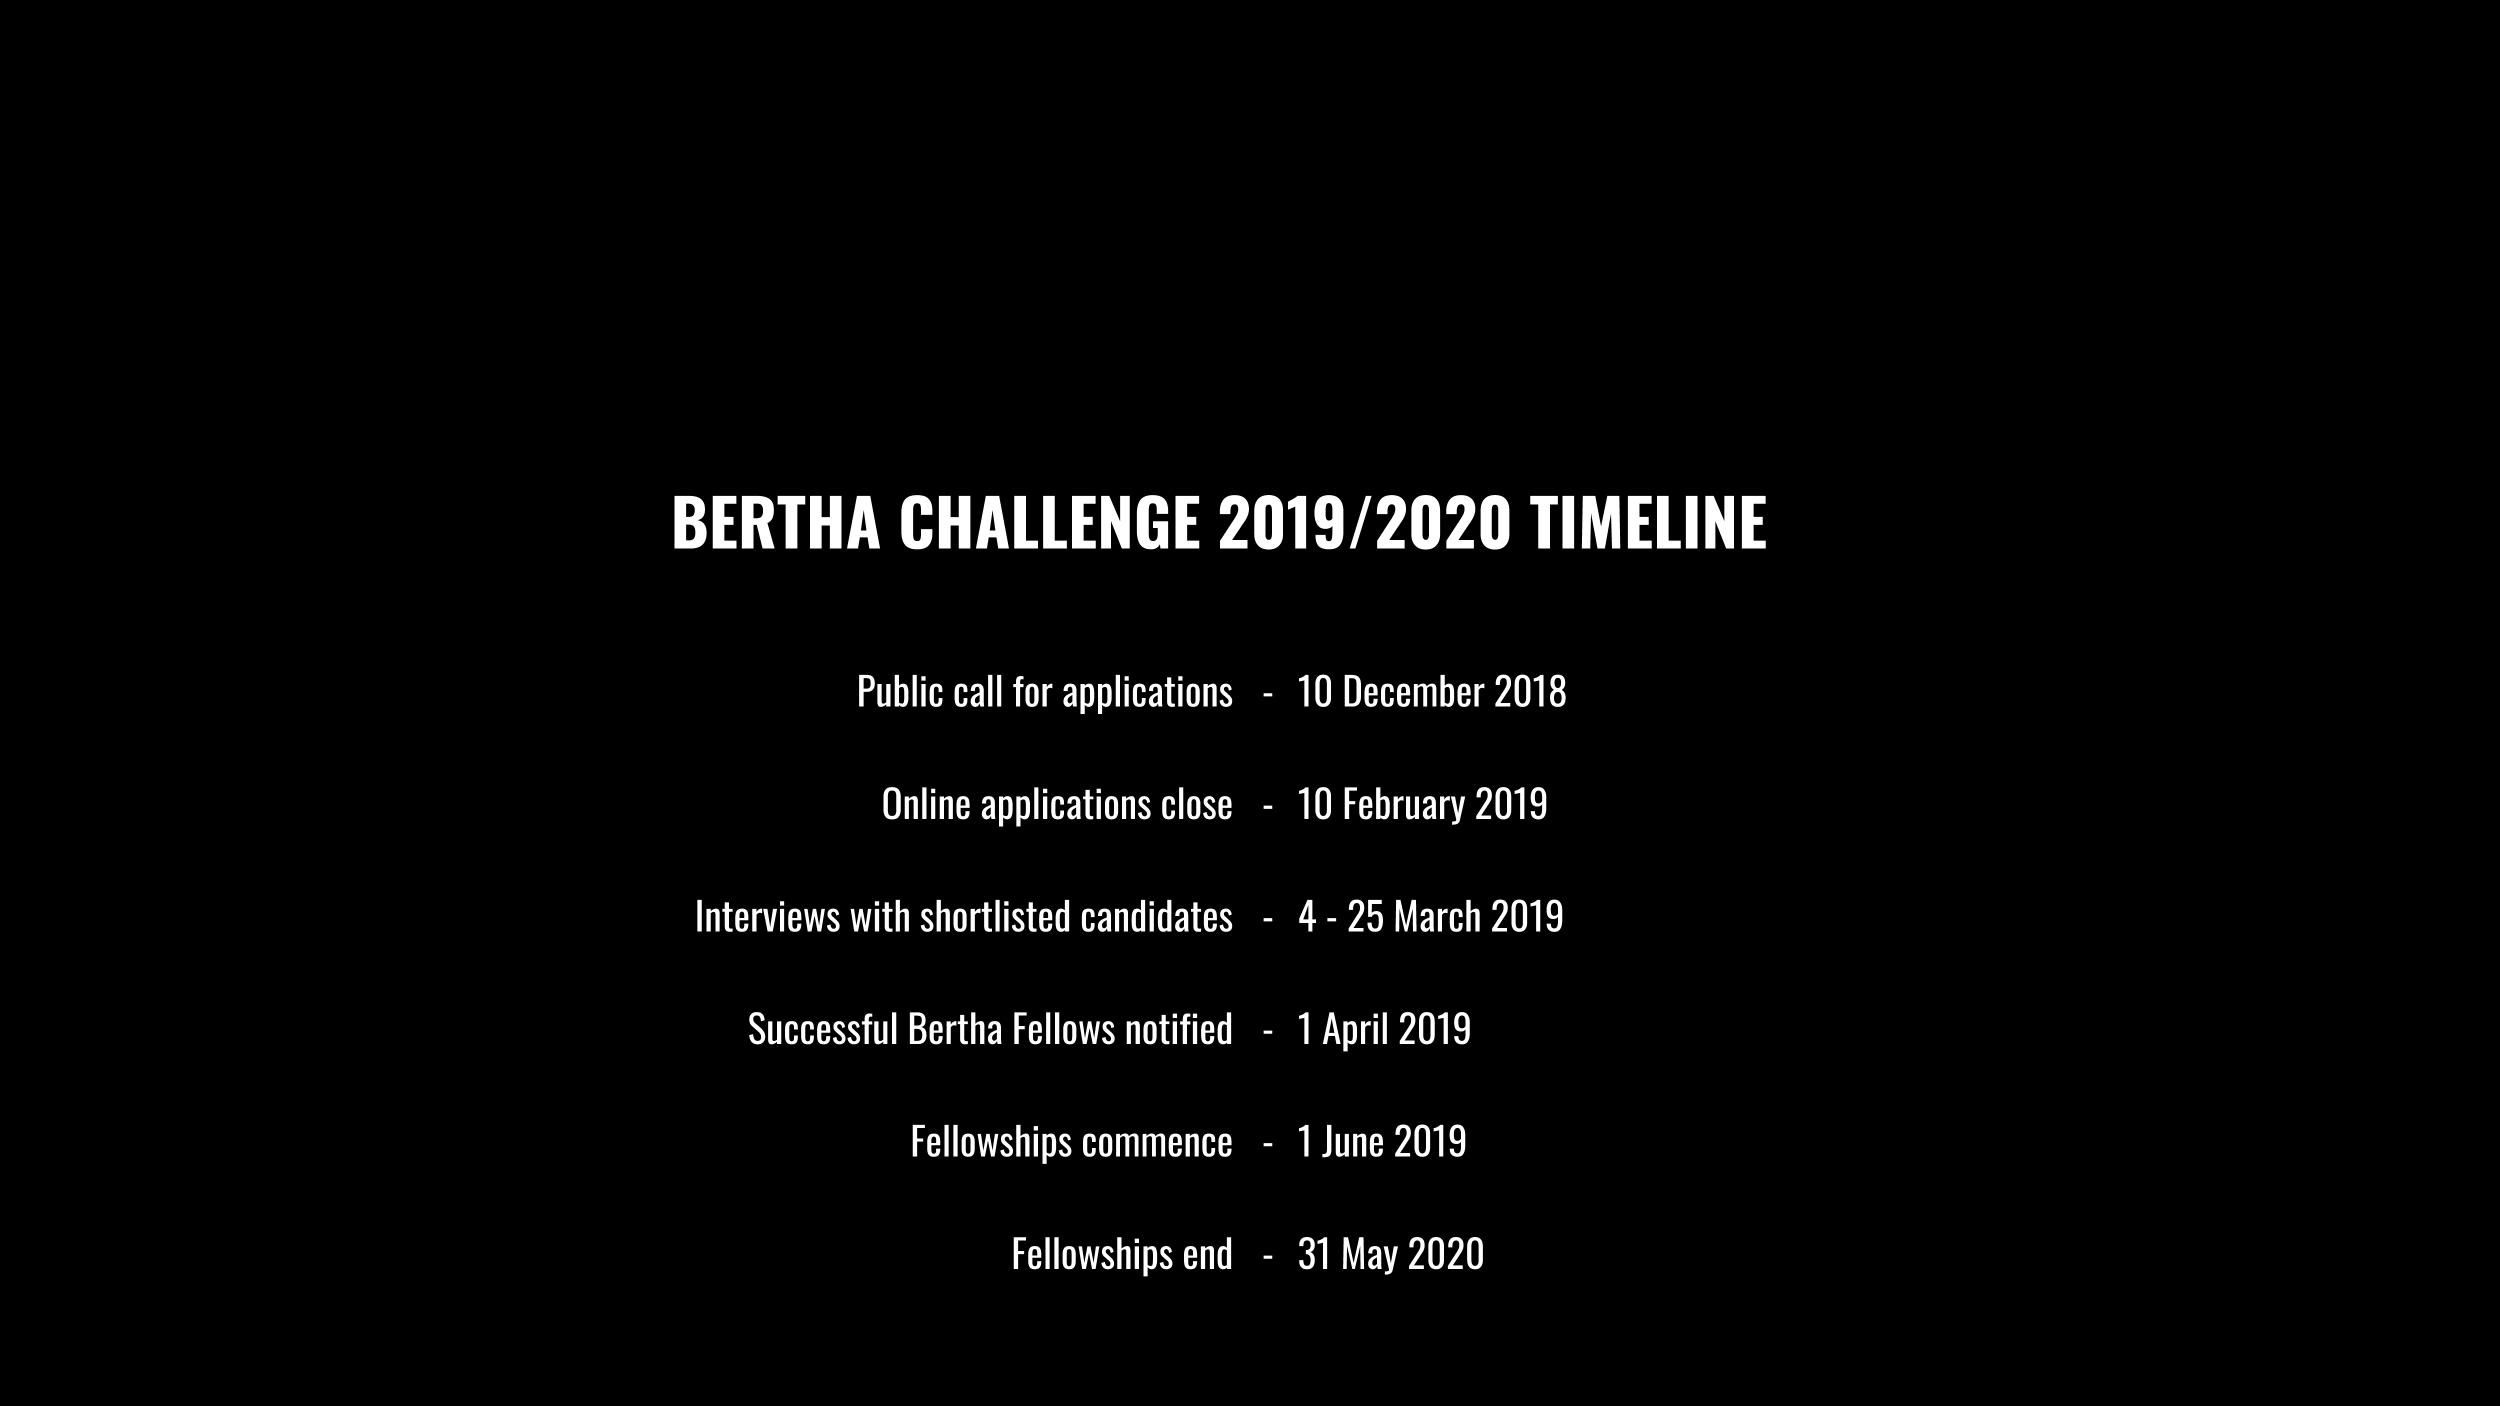 The Bertha Challenge - Bertha Foundation